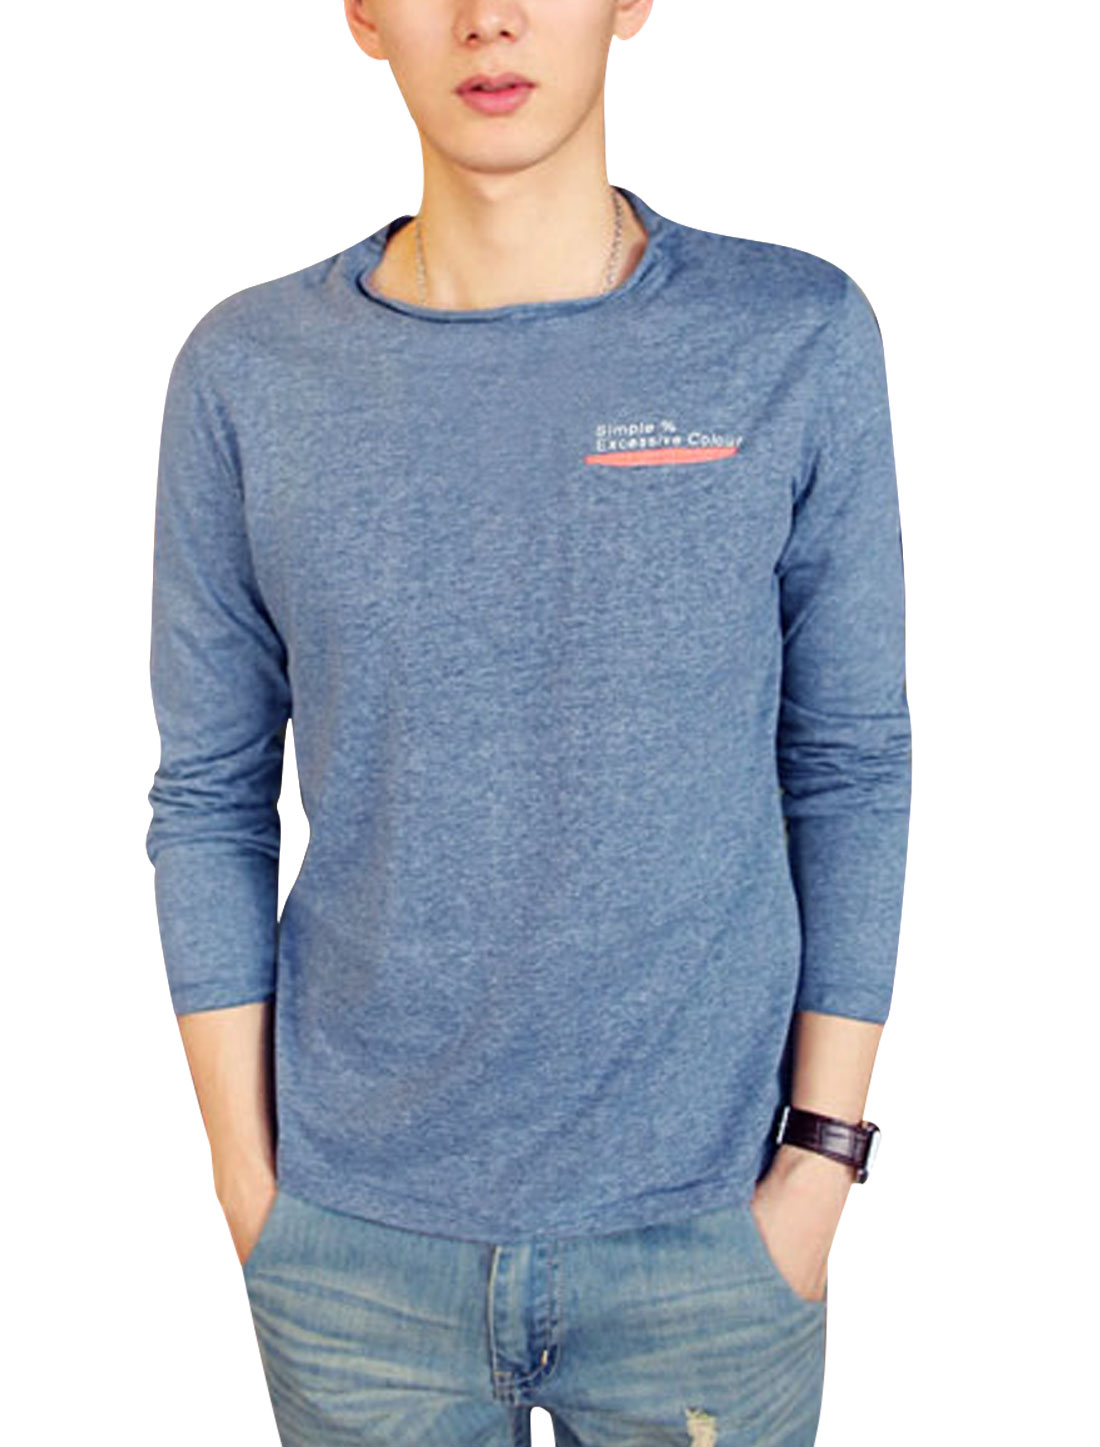 Men Fashion Style Pullover Single Welt Pocket Slim T-shirt Cool Gray S